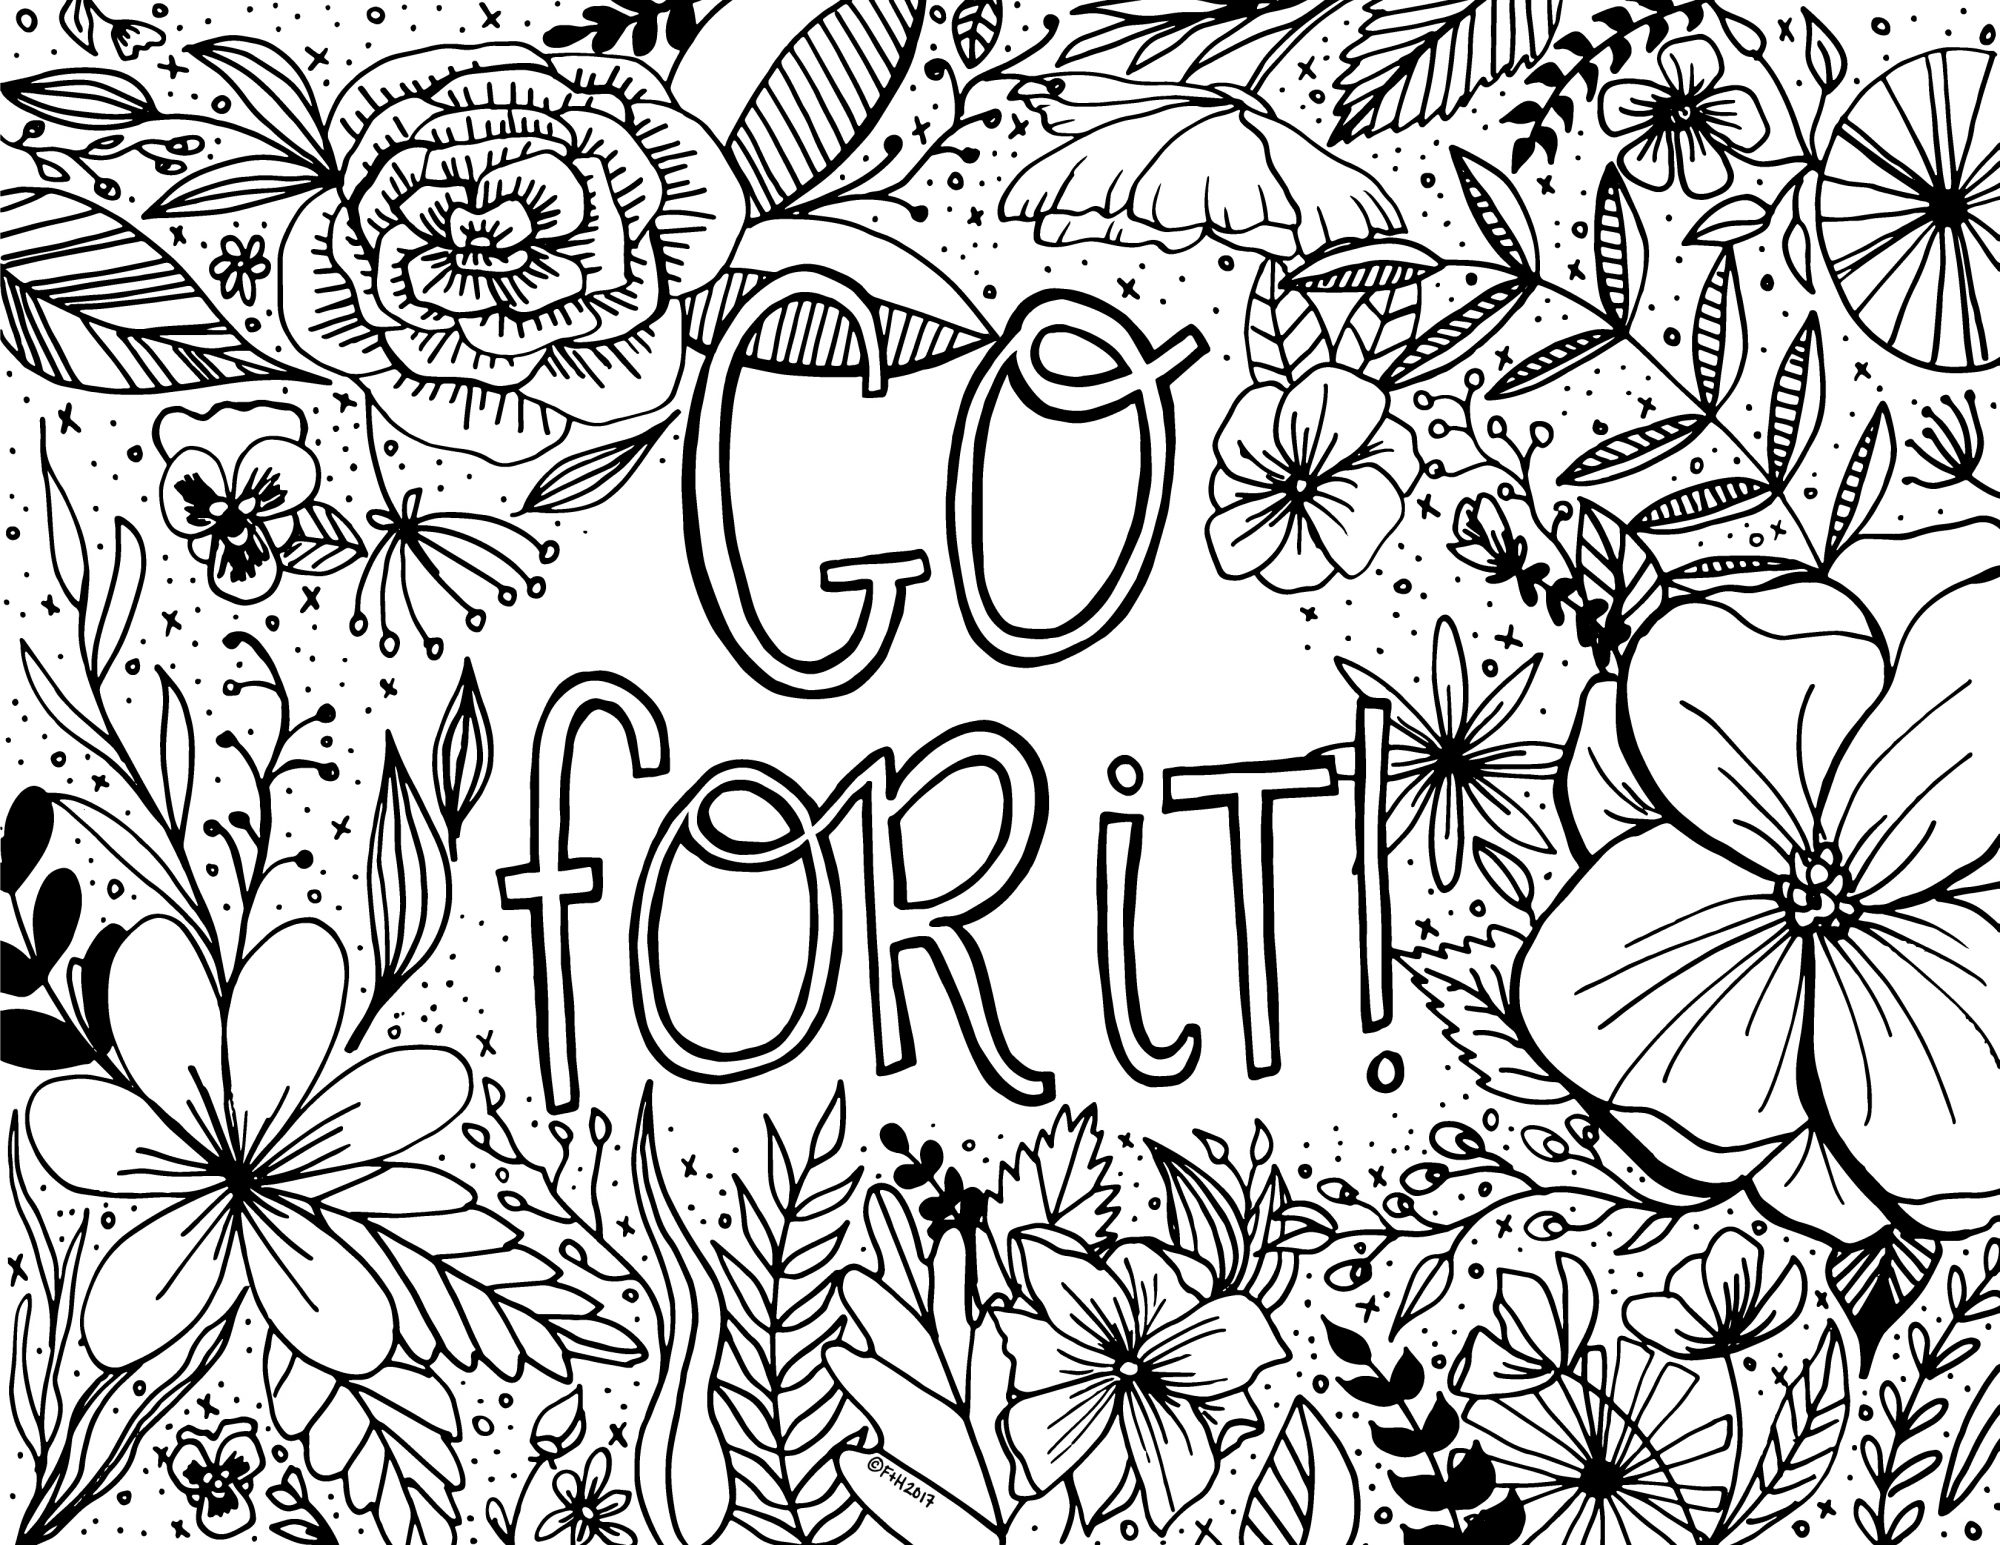 Printable Design Coloring Pages At Getdrawings